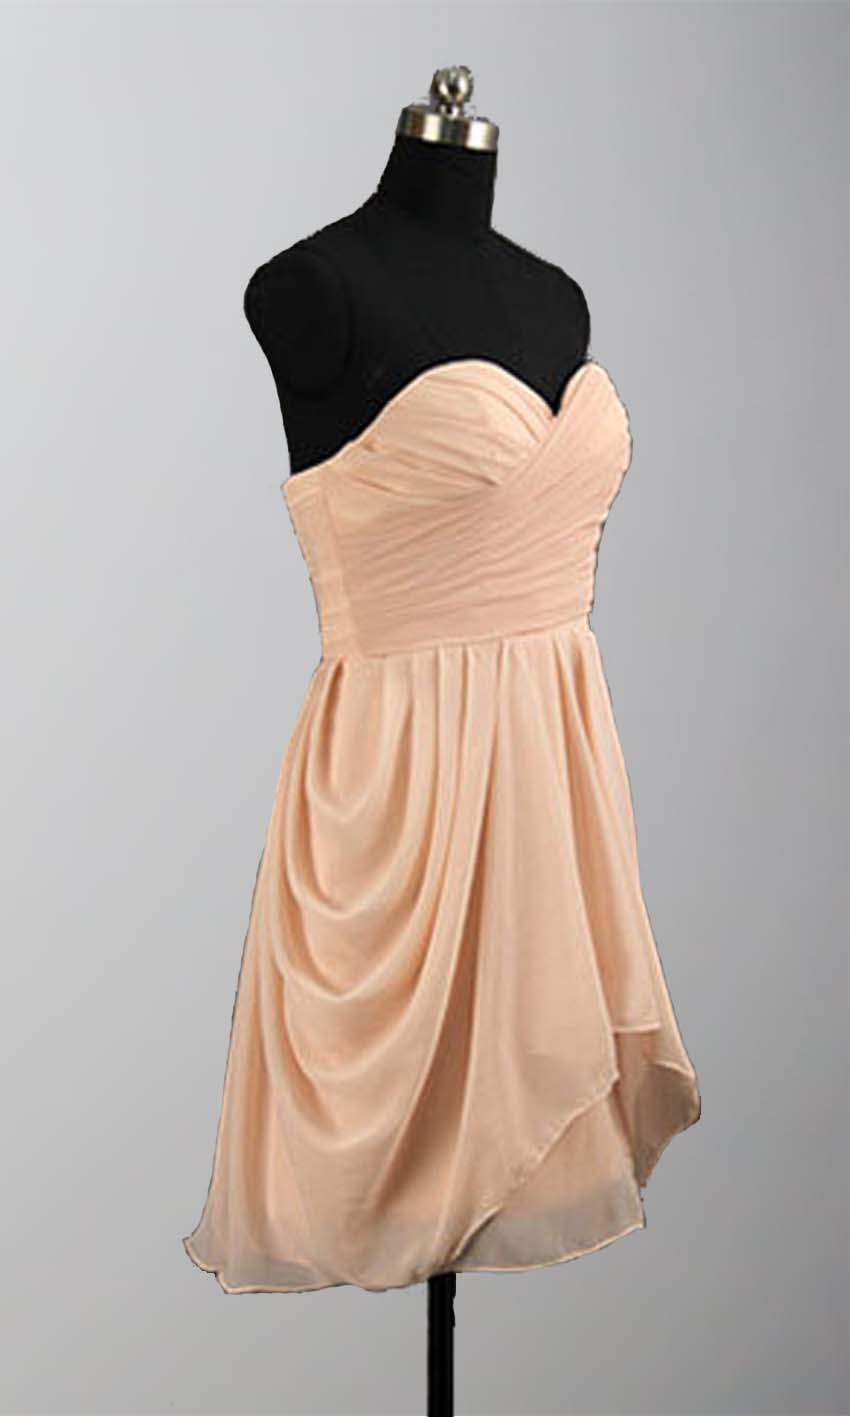 Wedding - Peach Ruching High Low Mini Bridesmaid Dresses KSP295 [KSP295] - £78.00 : Cheap Prom Dresses Uk, Bridesmaid Dresses, 2014 Prom & Evening Dresses, Look for cheap elegant prom dresses 2014, cocktail gowns, or dresses for special occasions? kissprom.co.uk of